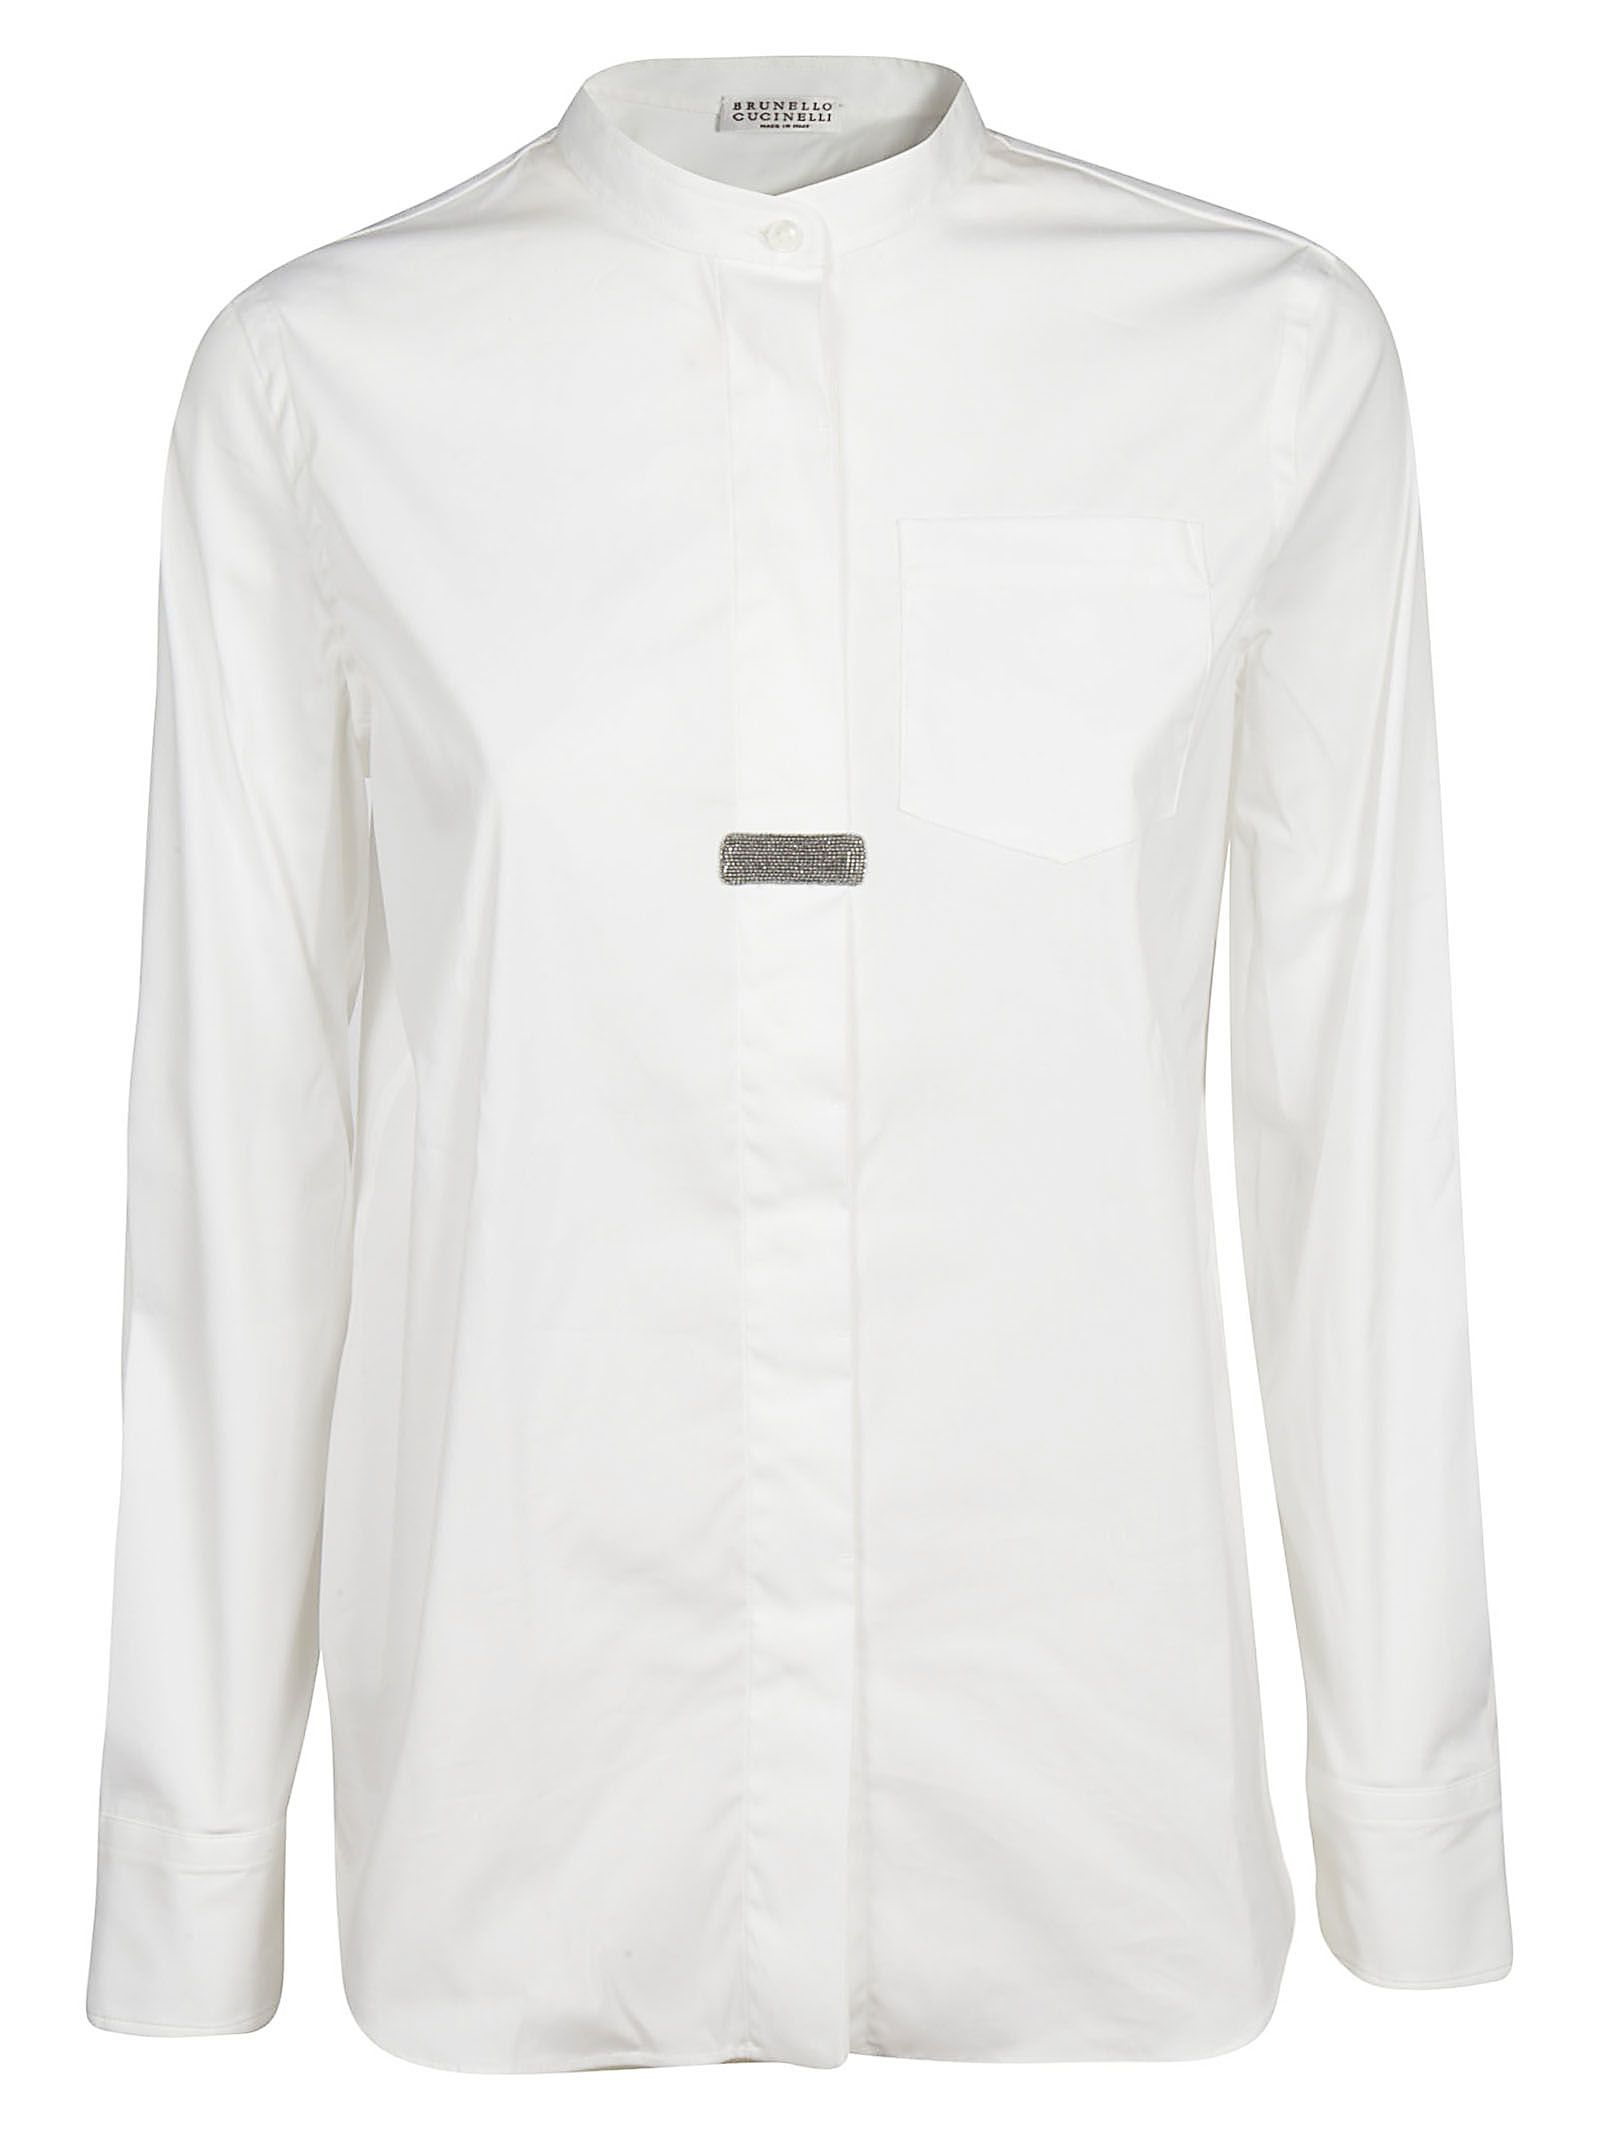 Brunello Cucinelli Mandarin Collar Shirt